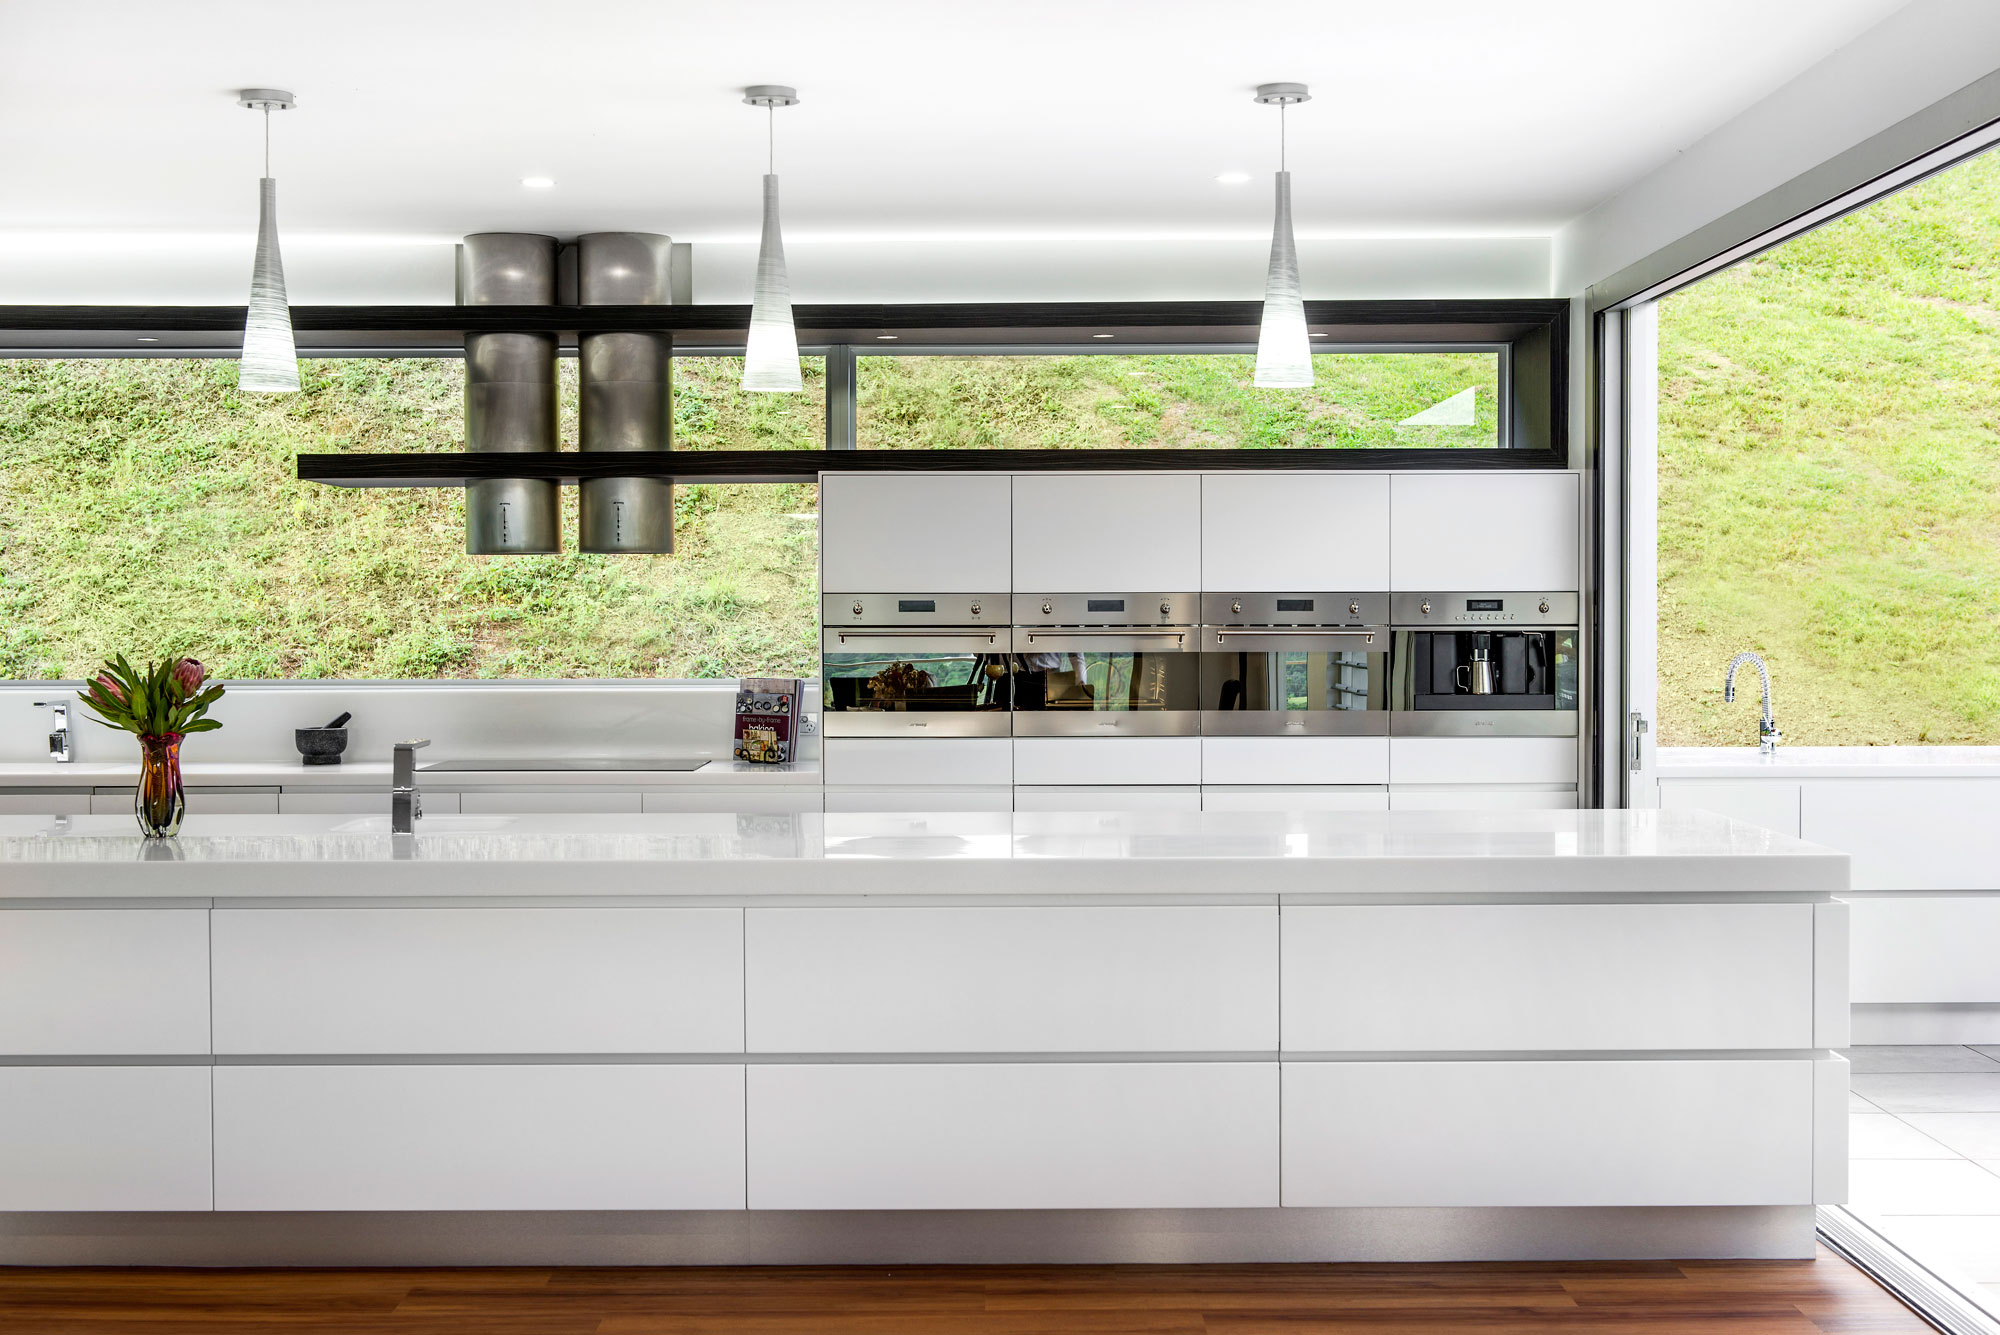 Kitchen Design Images Australia Designer Kitchen In Samford By Kim Duffin Of Sublime Architectural